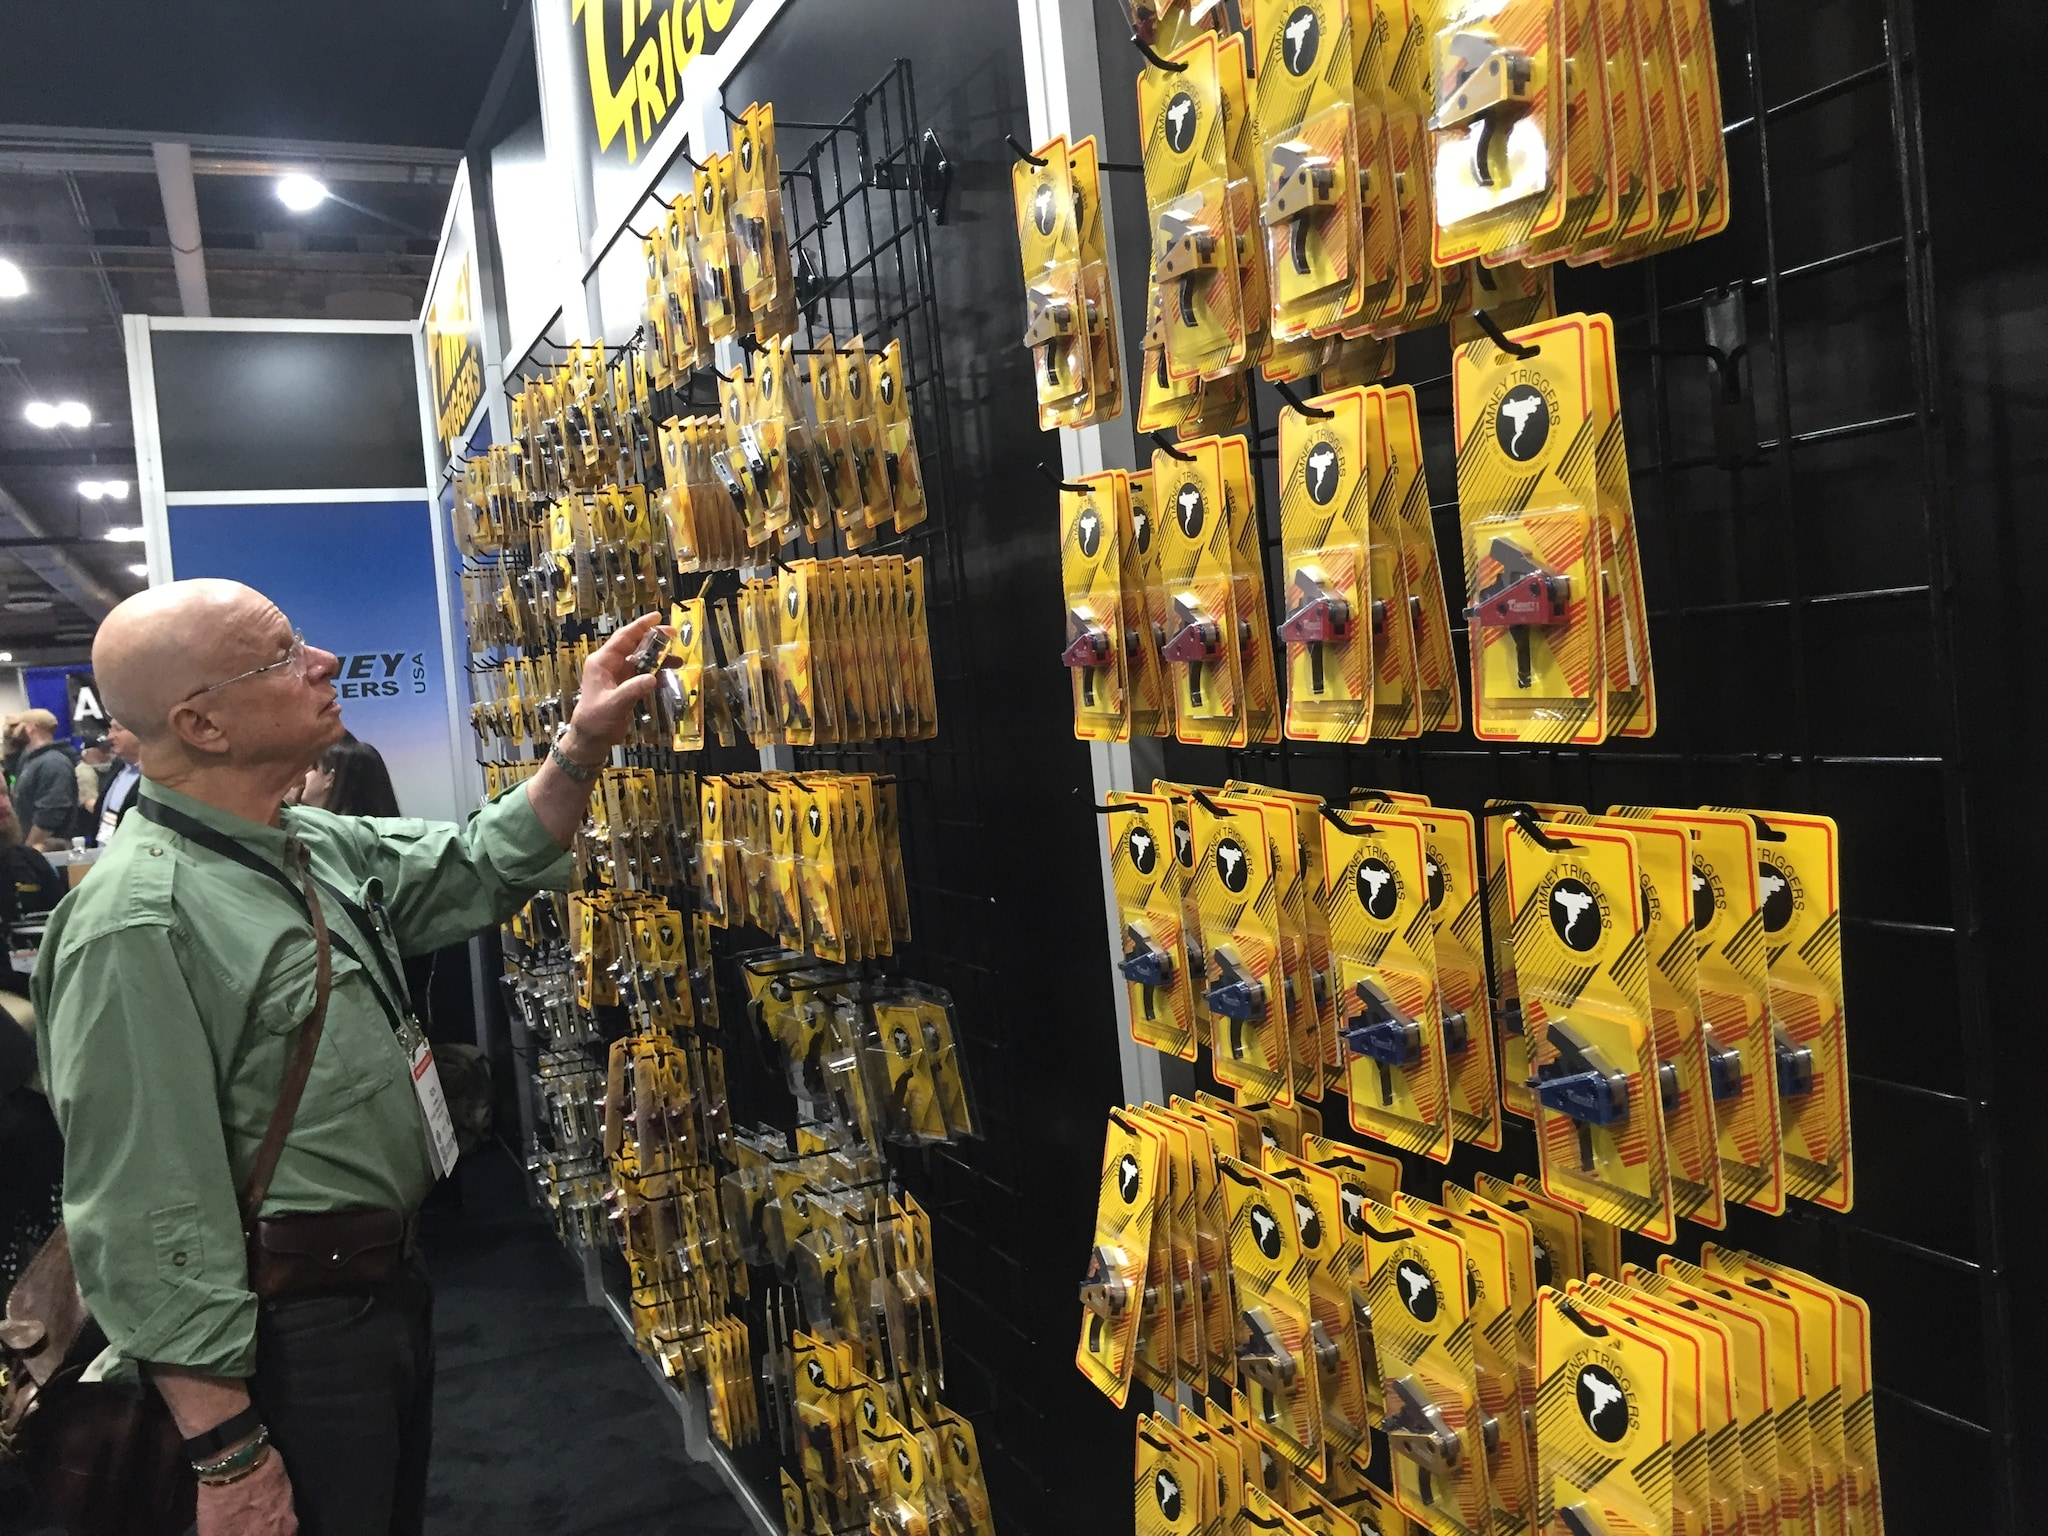 A man peruses triggers at SHOT Show 2017 in Las Vegas, Nevada, on Wednesday.